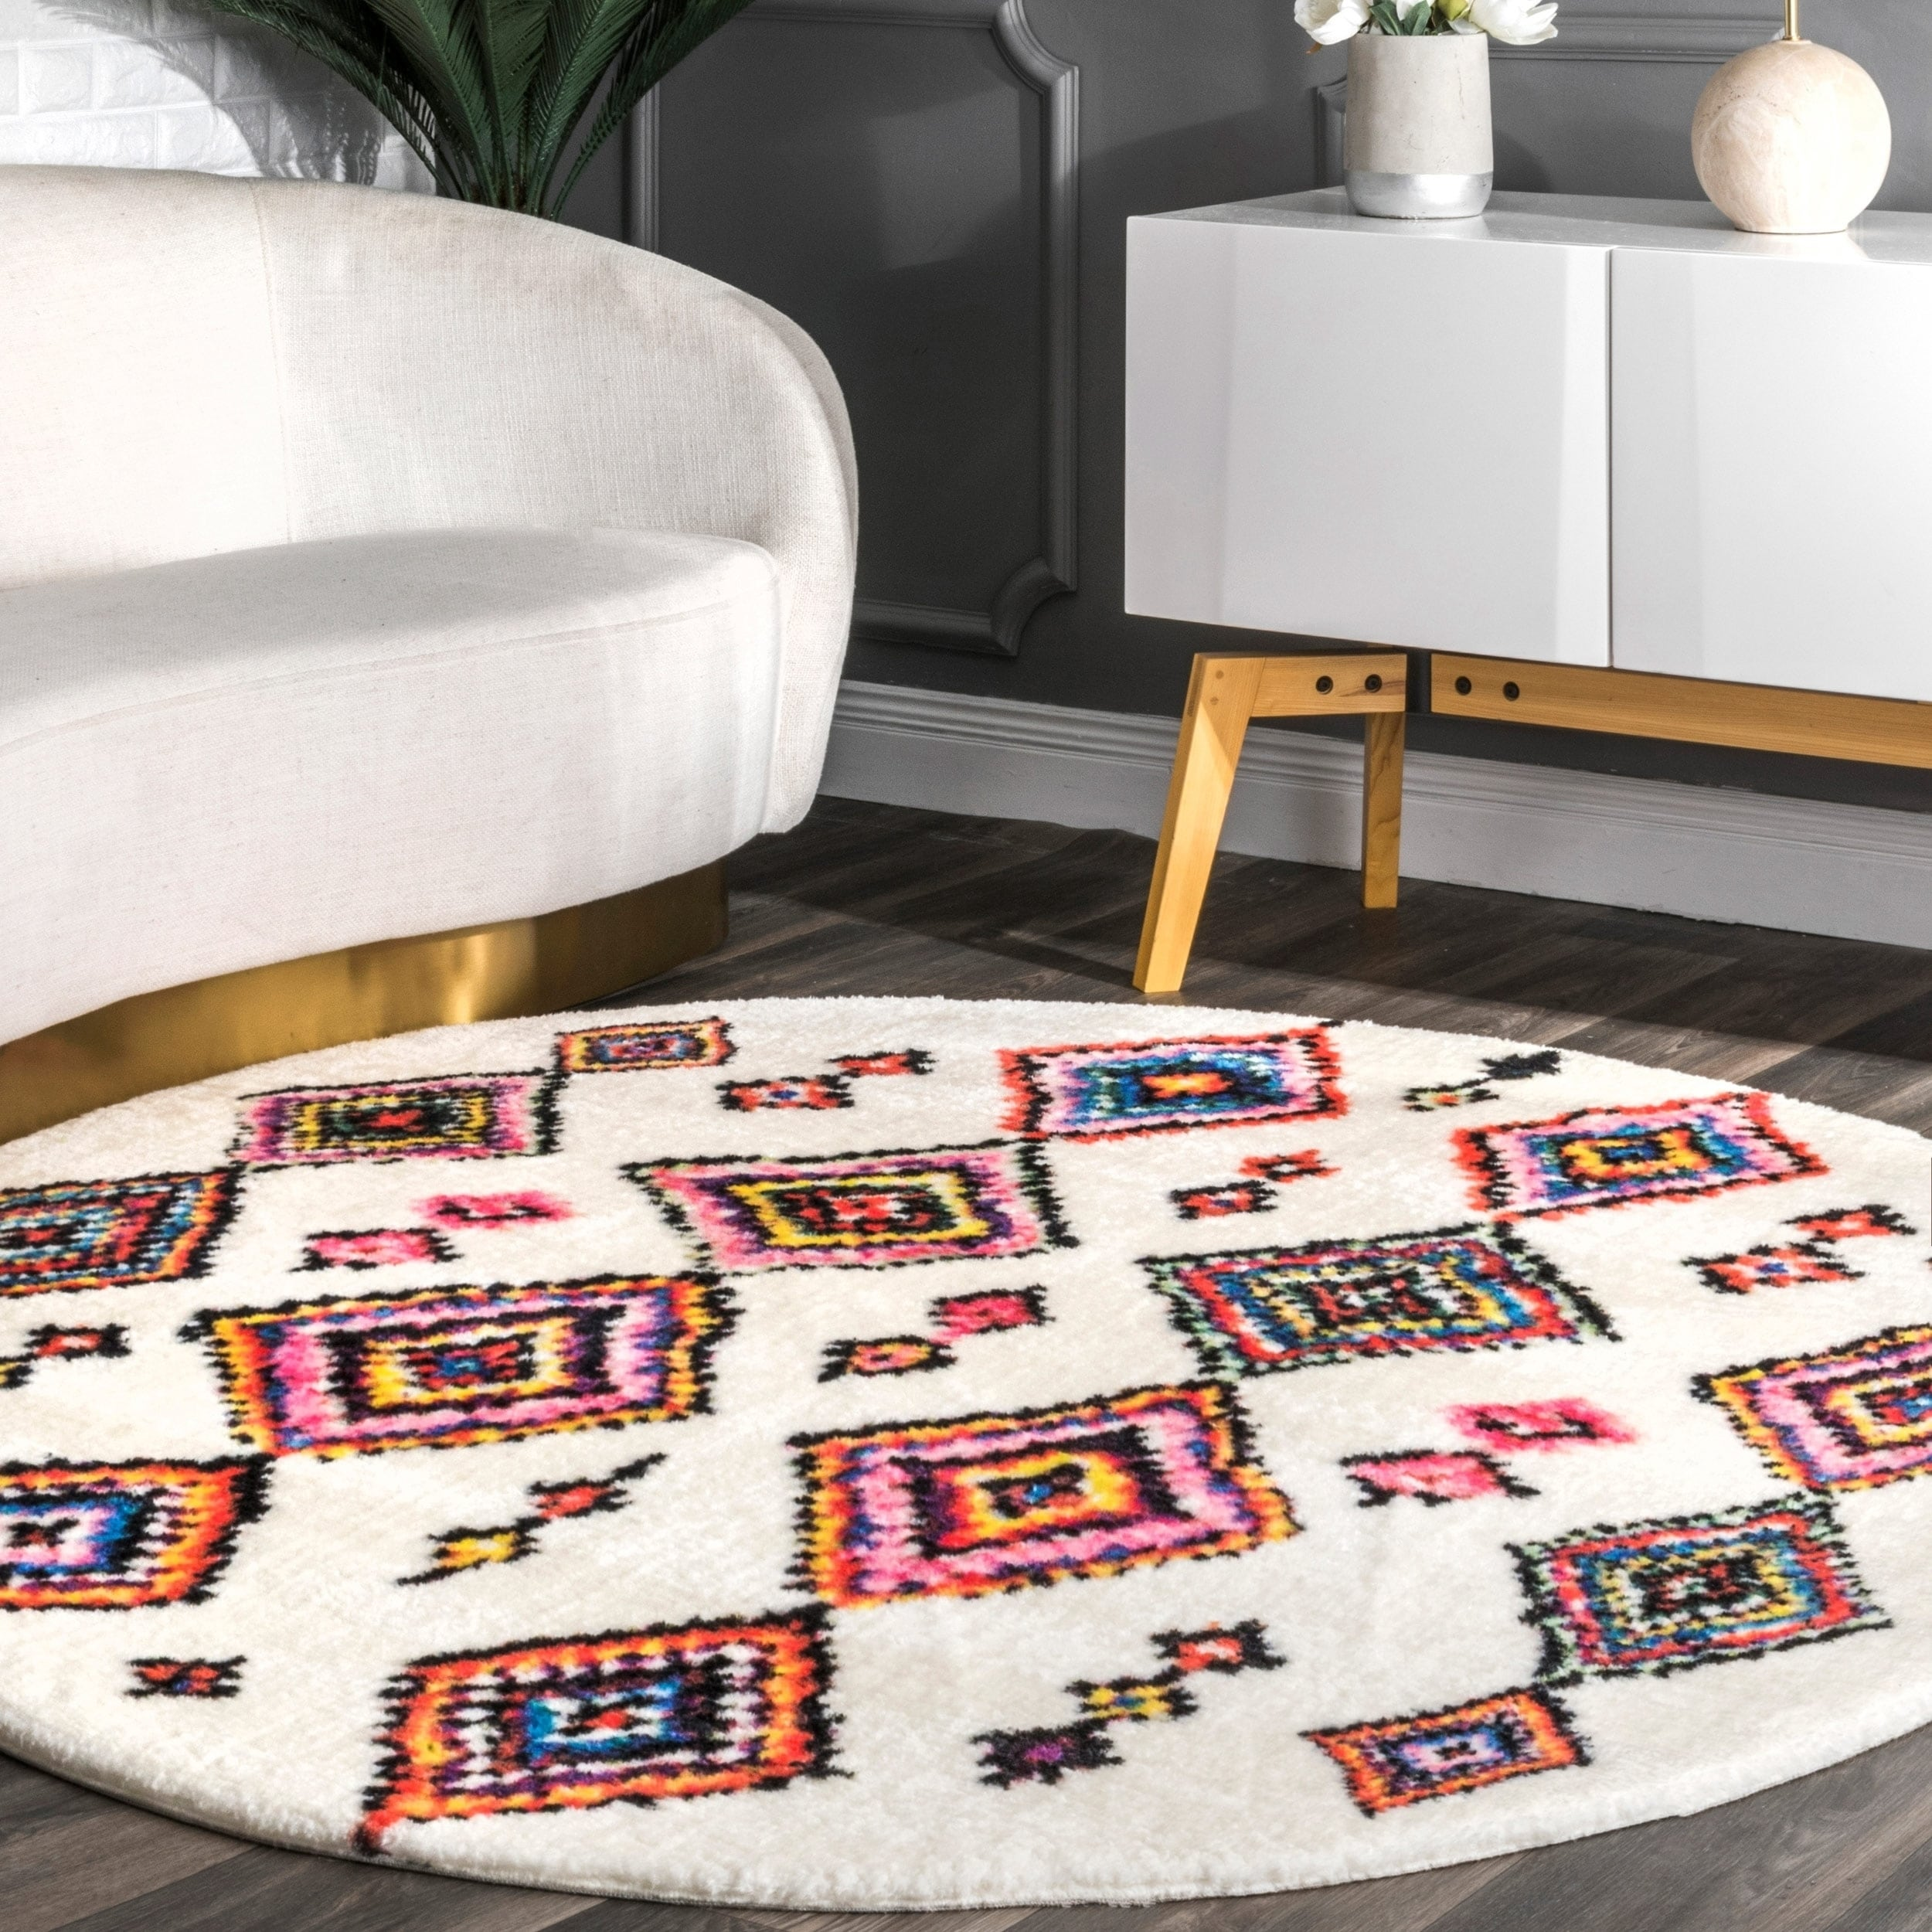 Nuloom Multicolor Transitional Moroccan Inspired Diamond Pattern